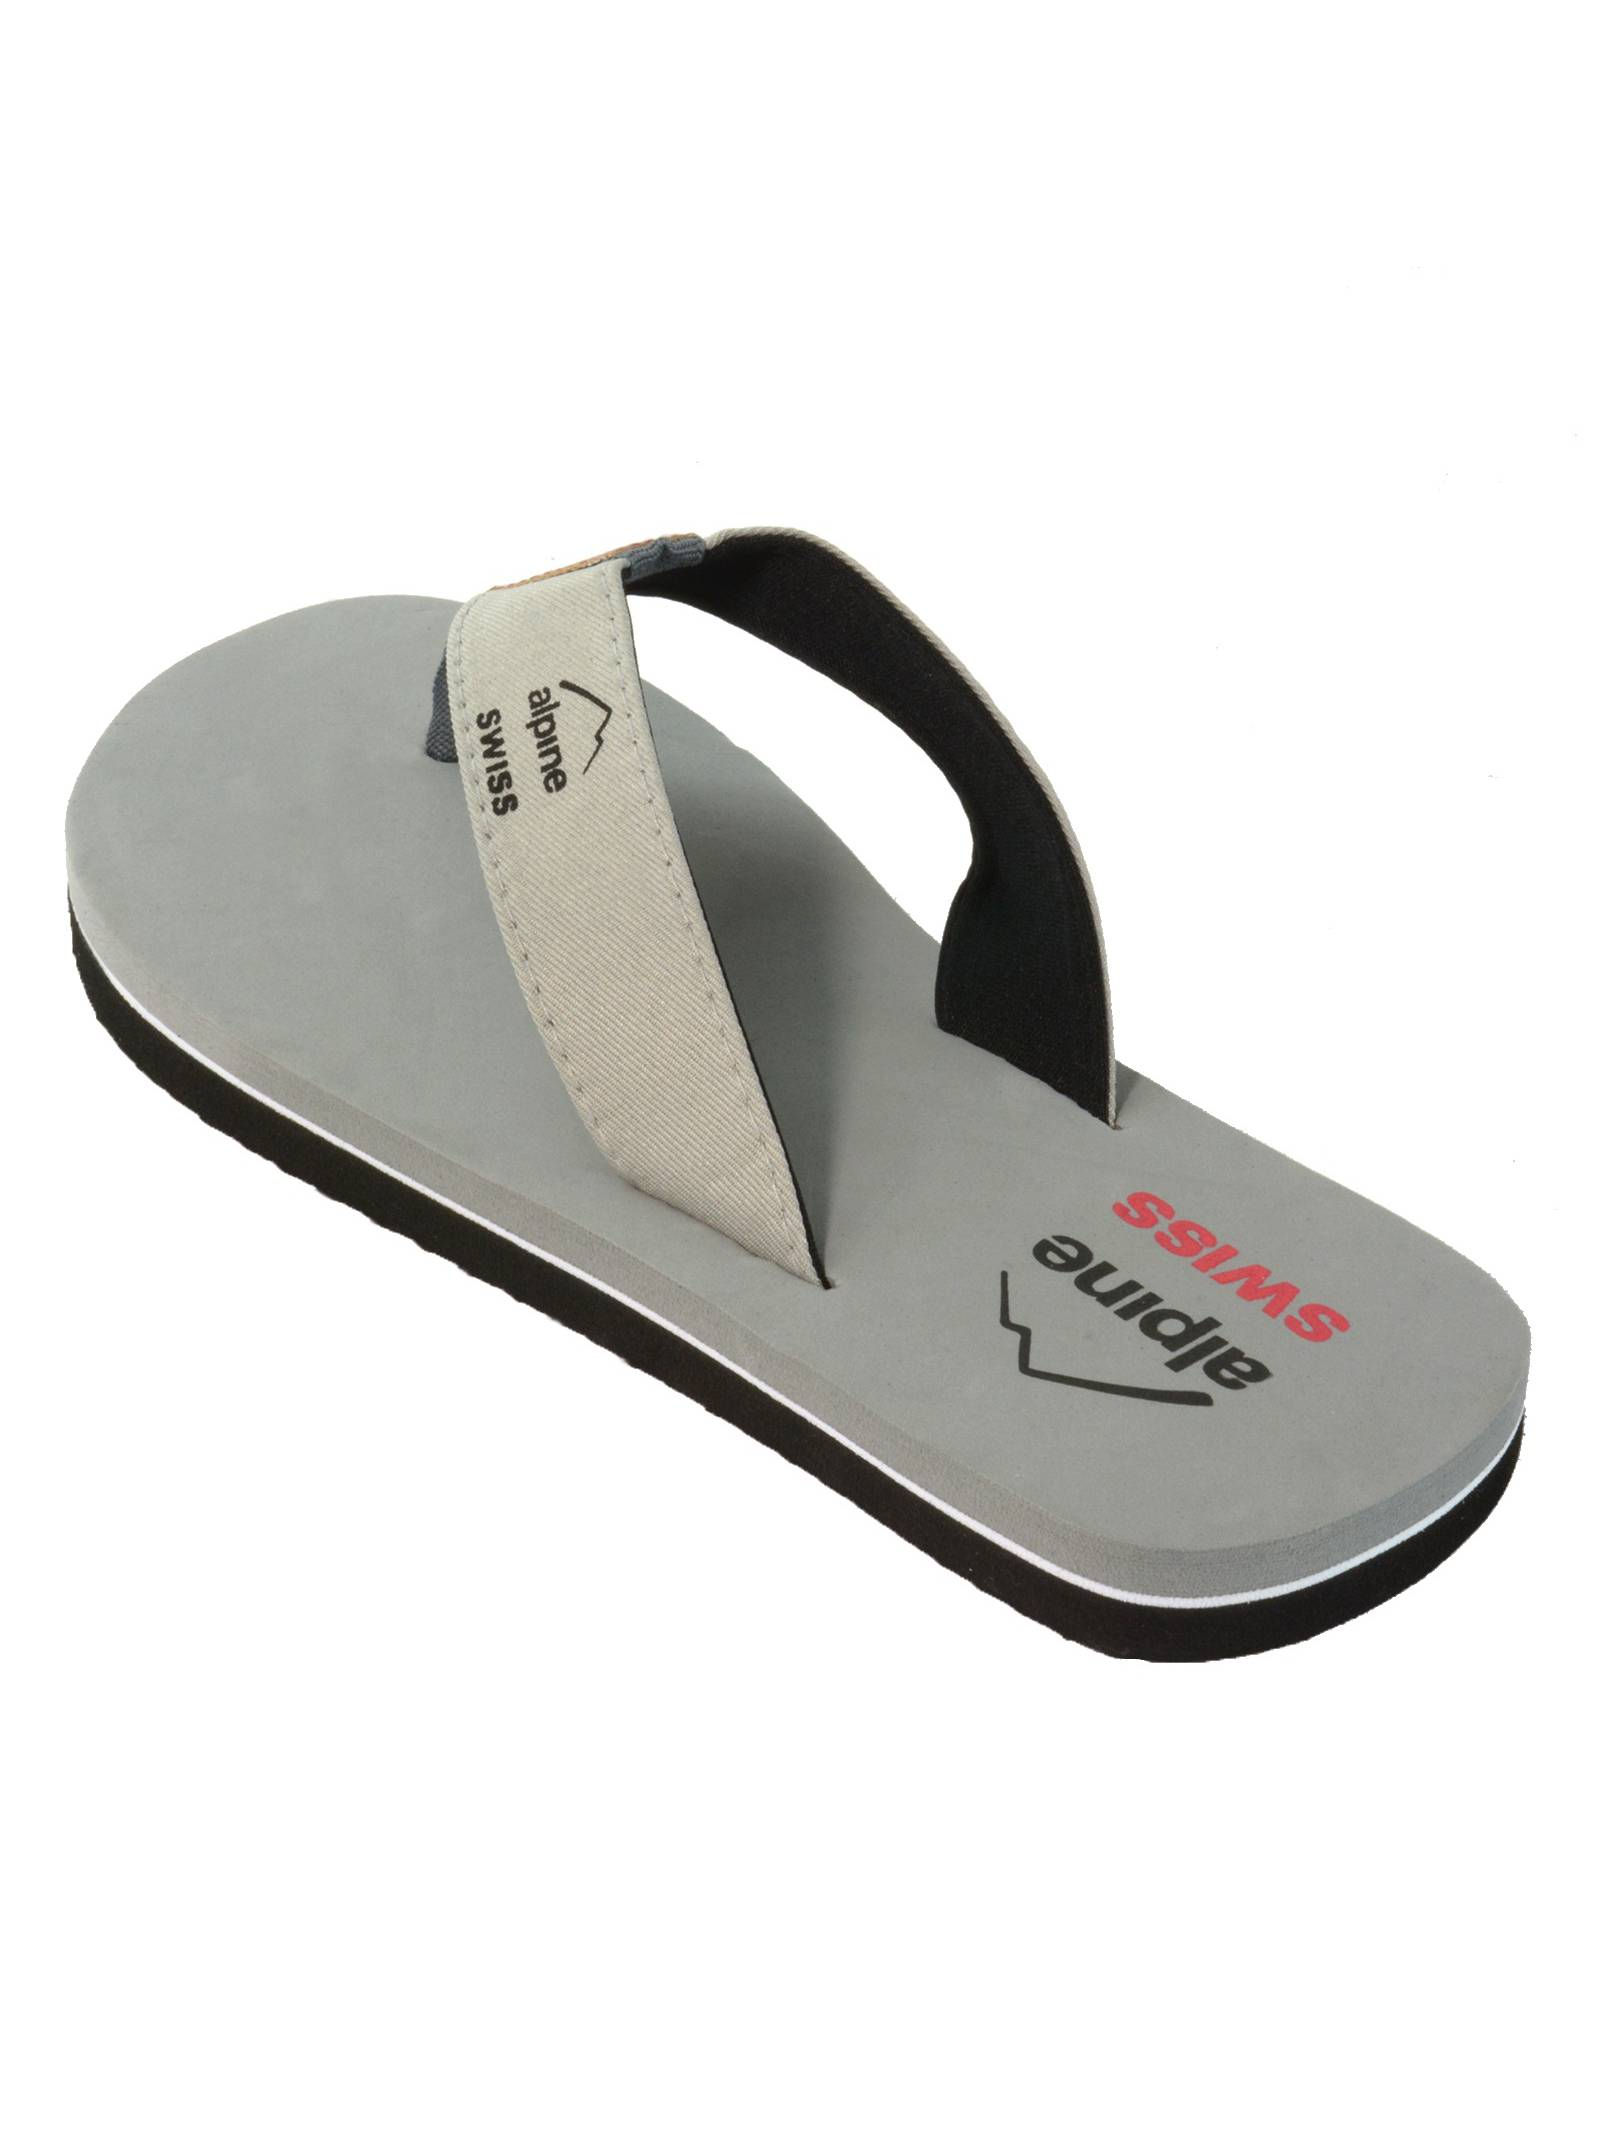 77240fc1090 alpine-swiss - alpine swiss men s flip flops beach sandals lightweight eva  sole comfort thongs - Walmart.com